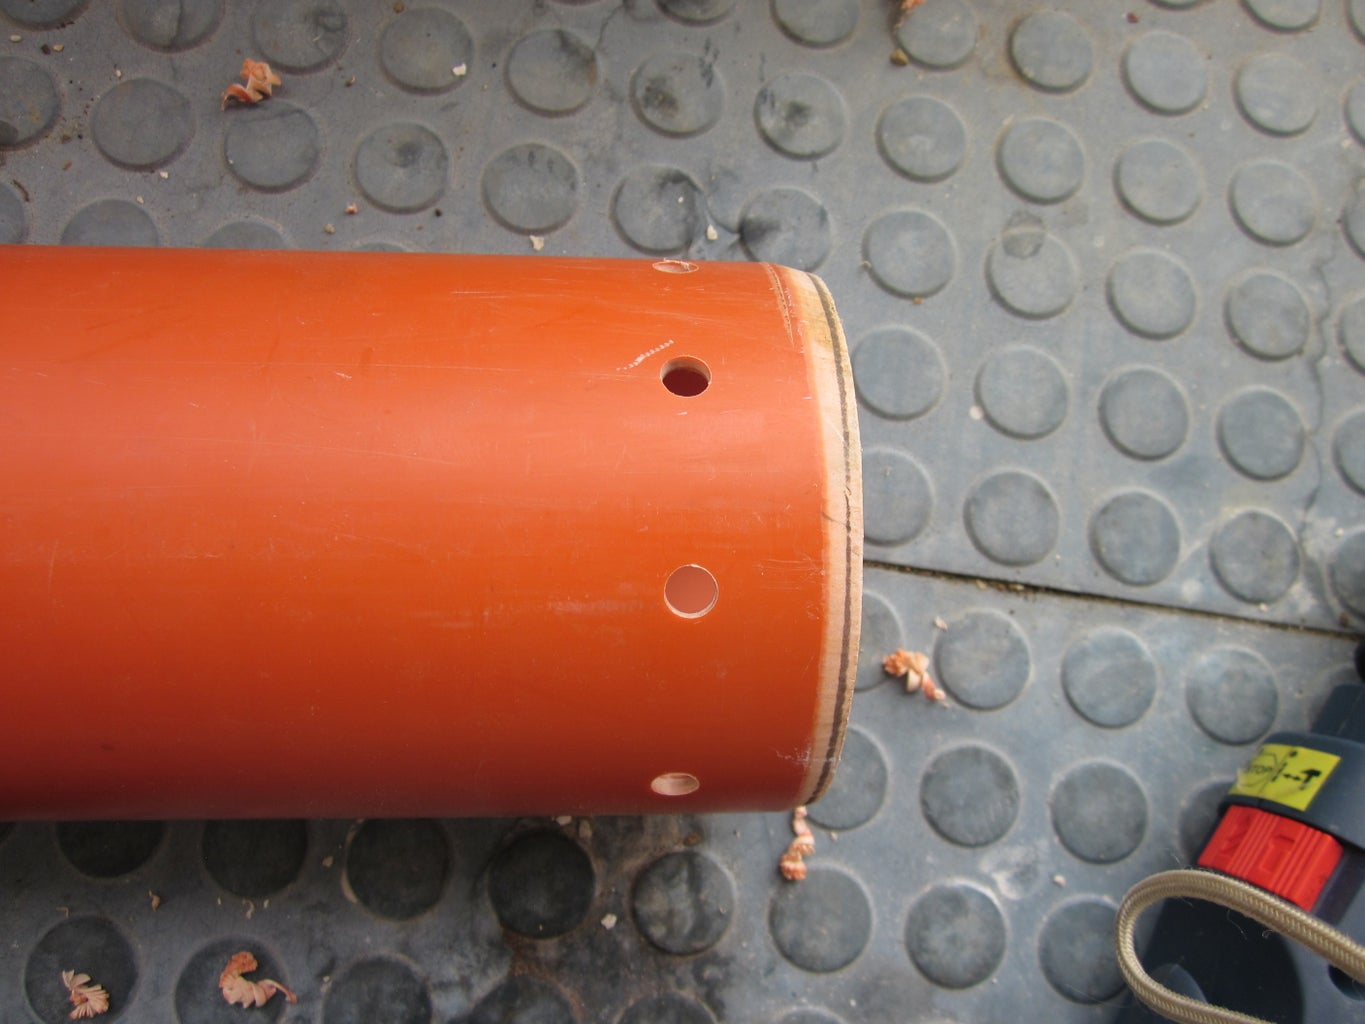 Drill Some Holes to Bottom of the Pipe